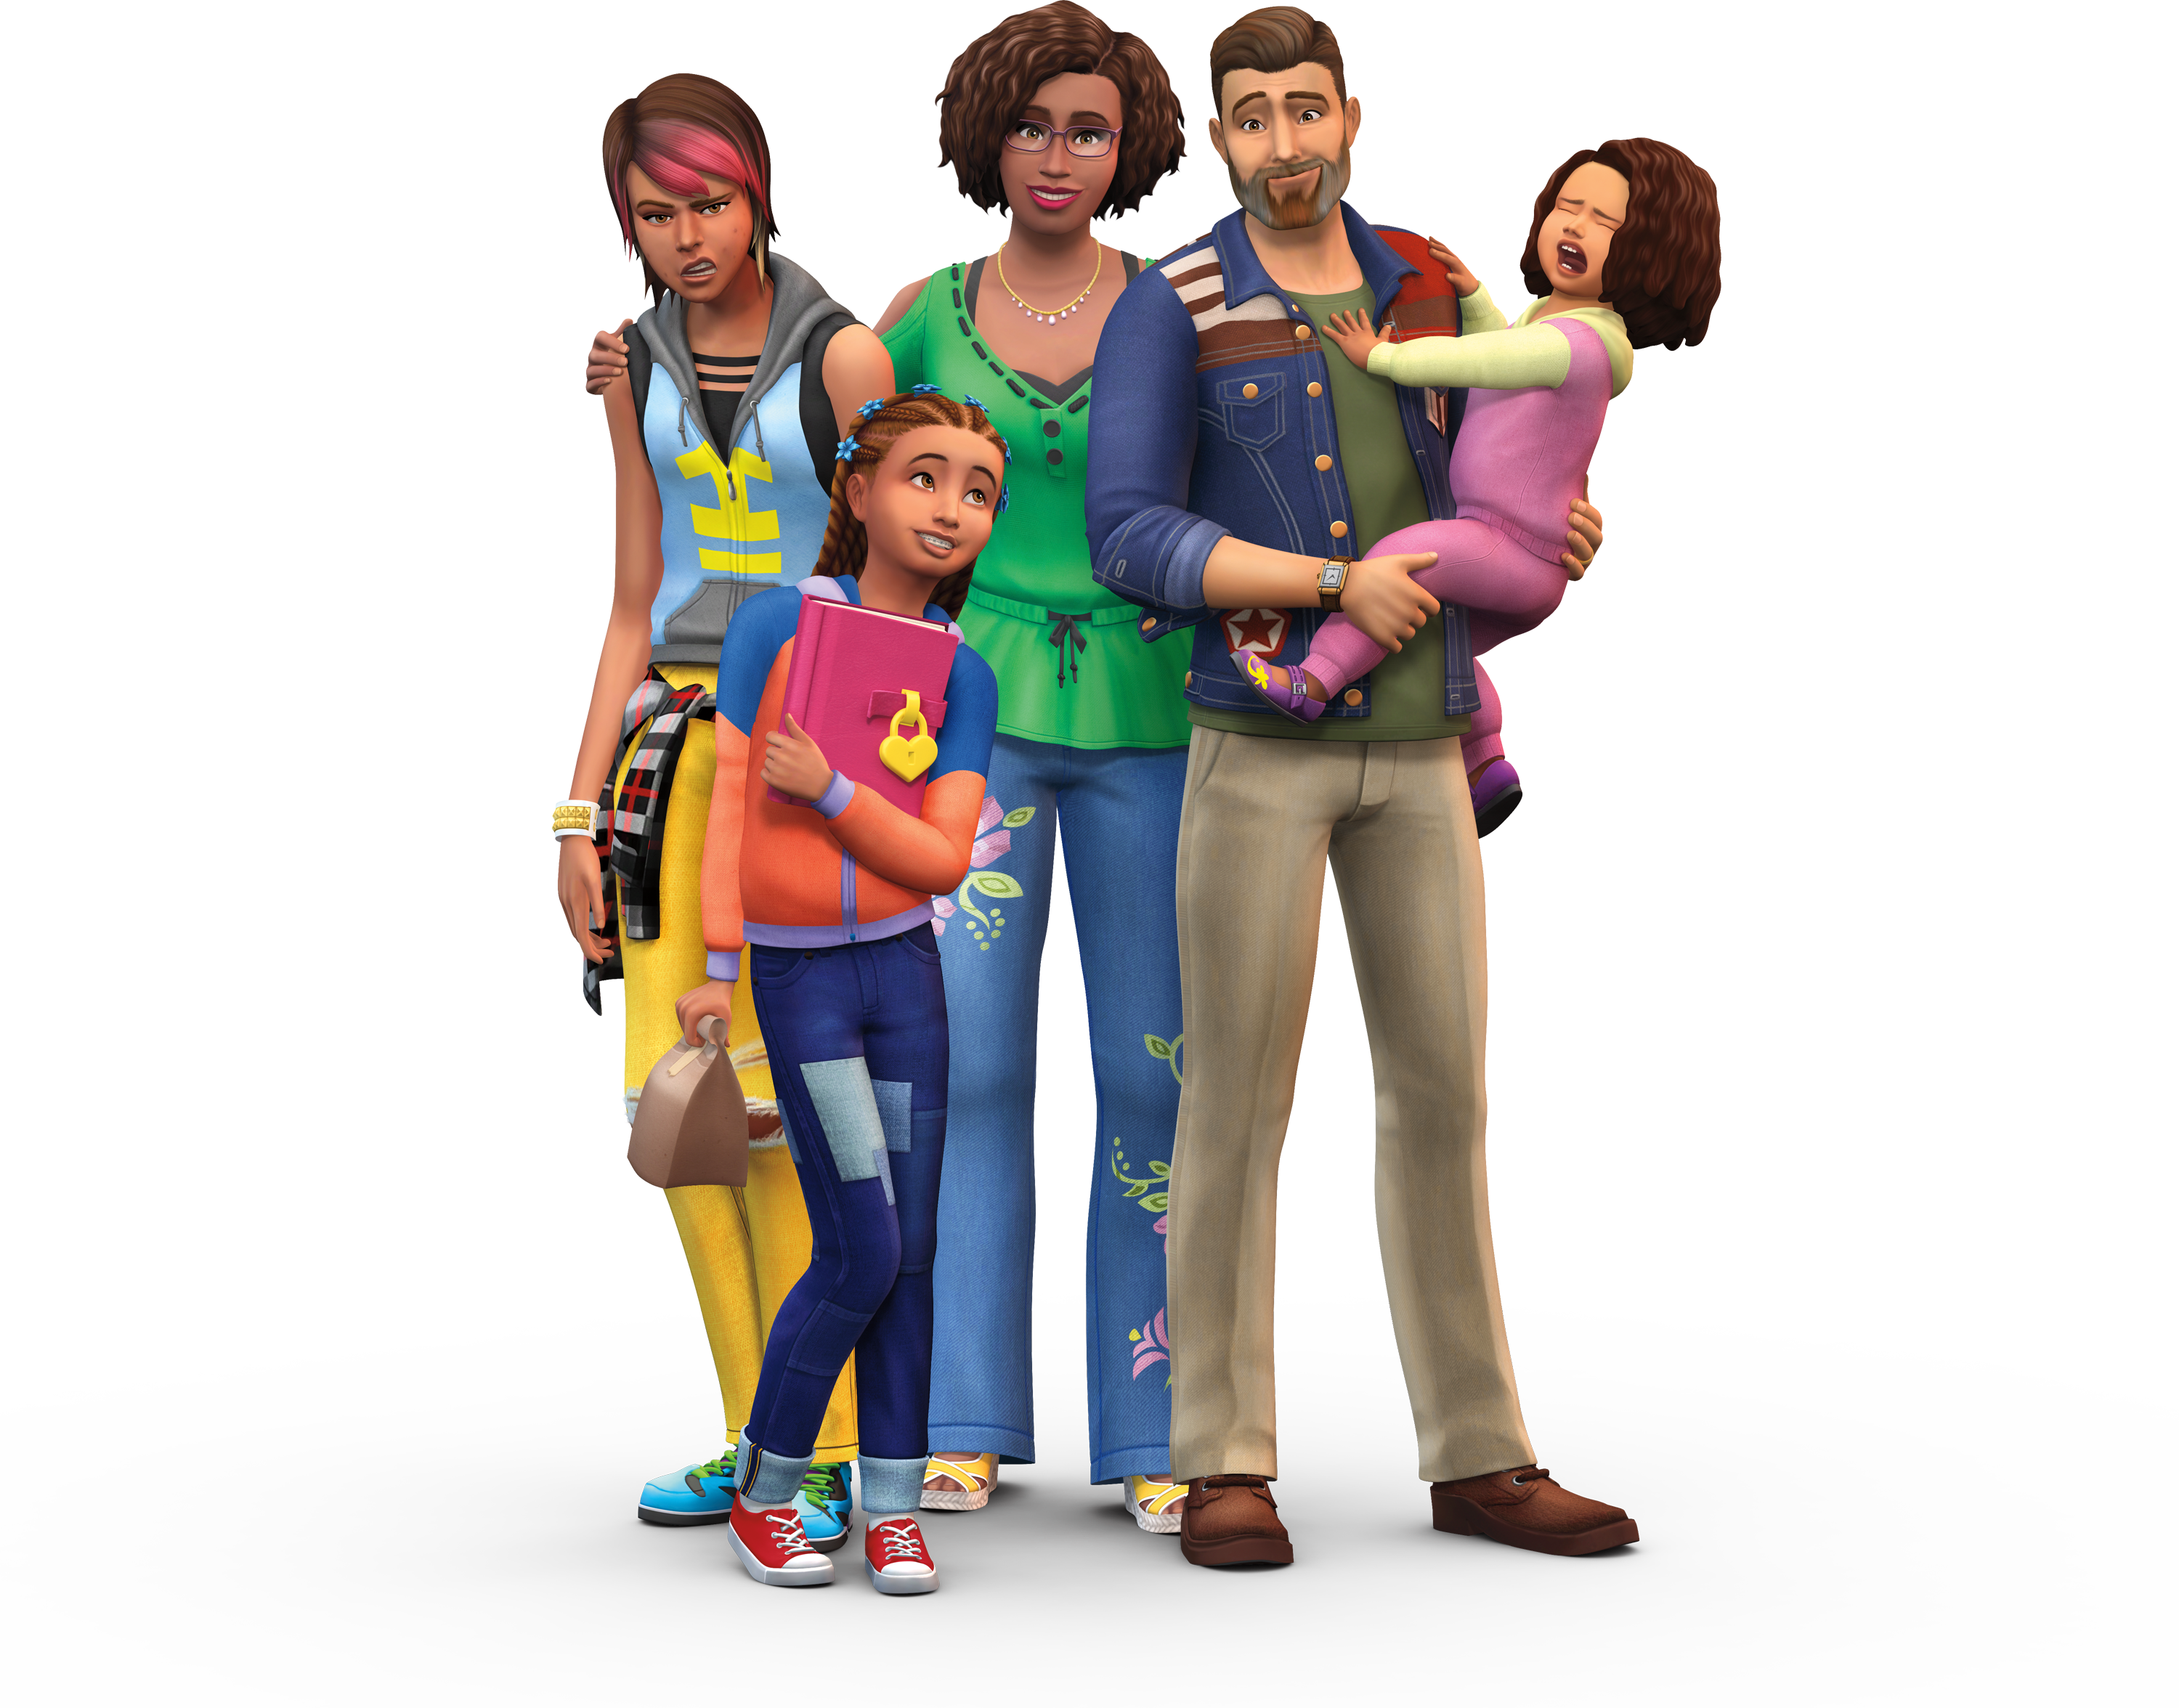 Sims Shoulder Outdoor Human Parenthood Pets Behavior PNG Image